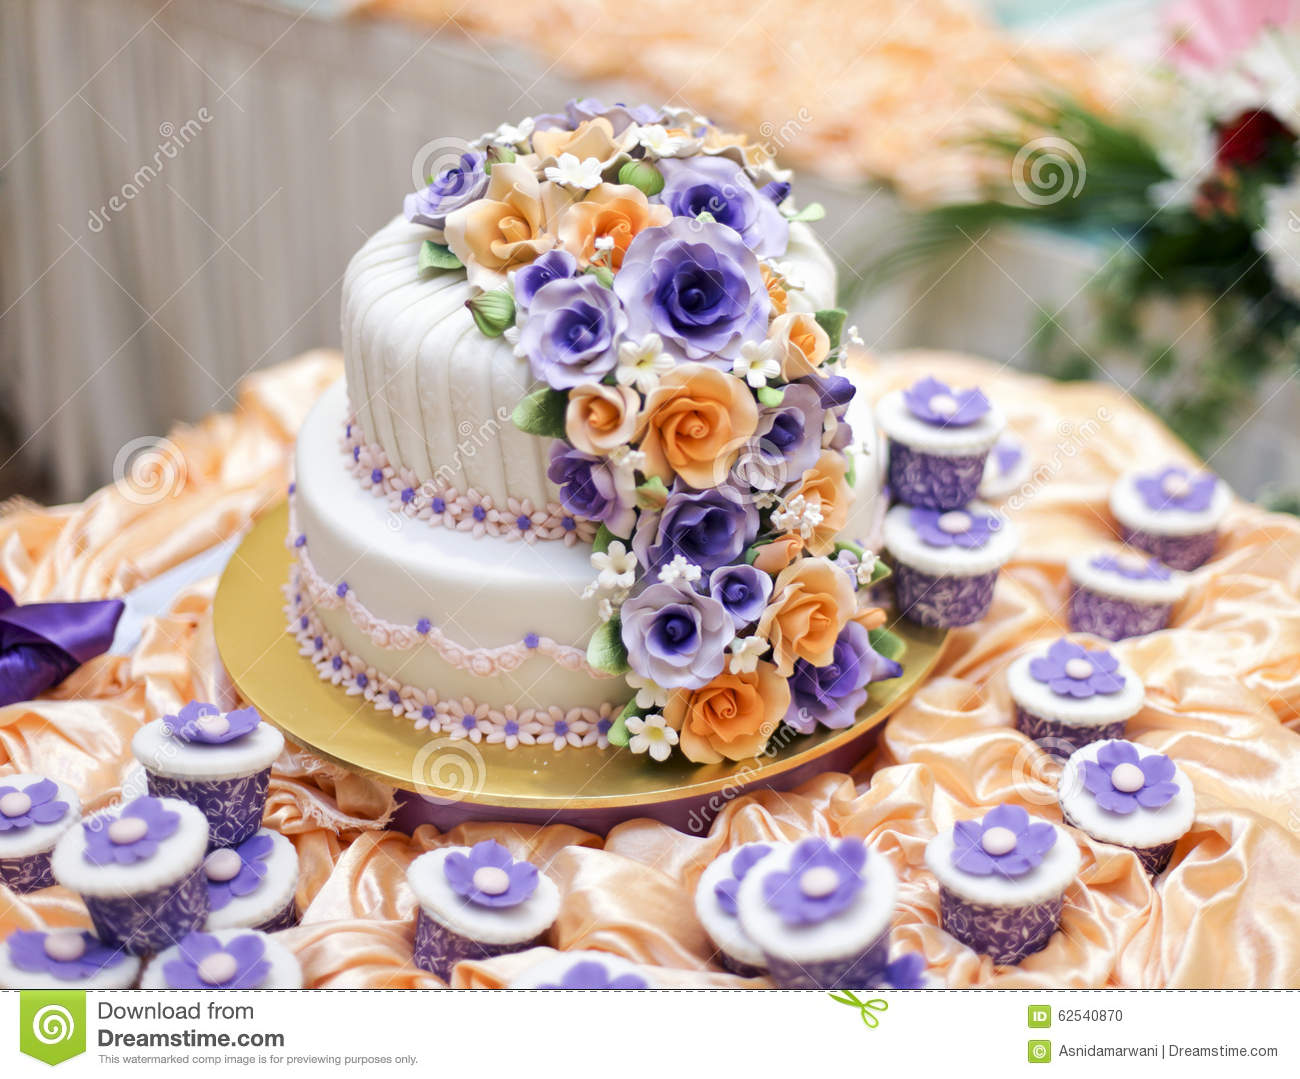 Free Beautiful Cake Images : The Most Beautiful Cake For Solemnization Event.shallow ...